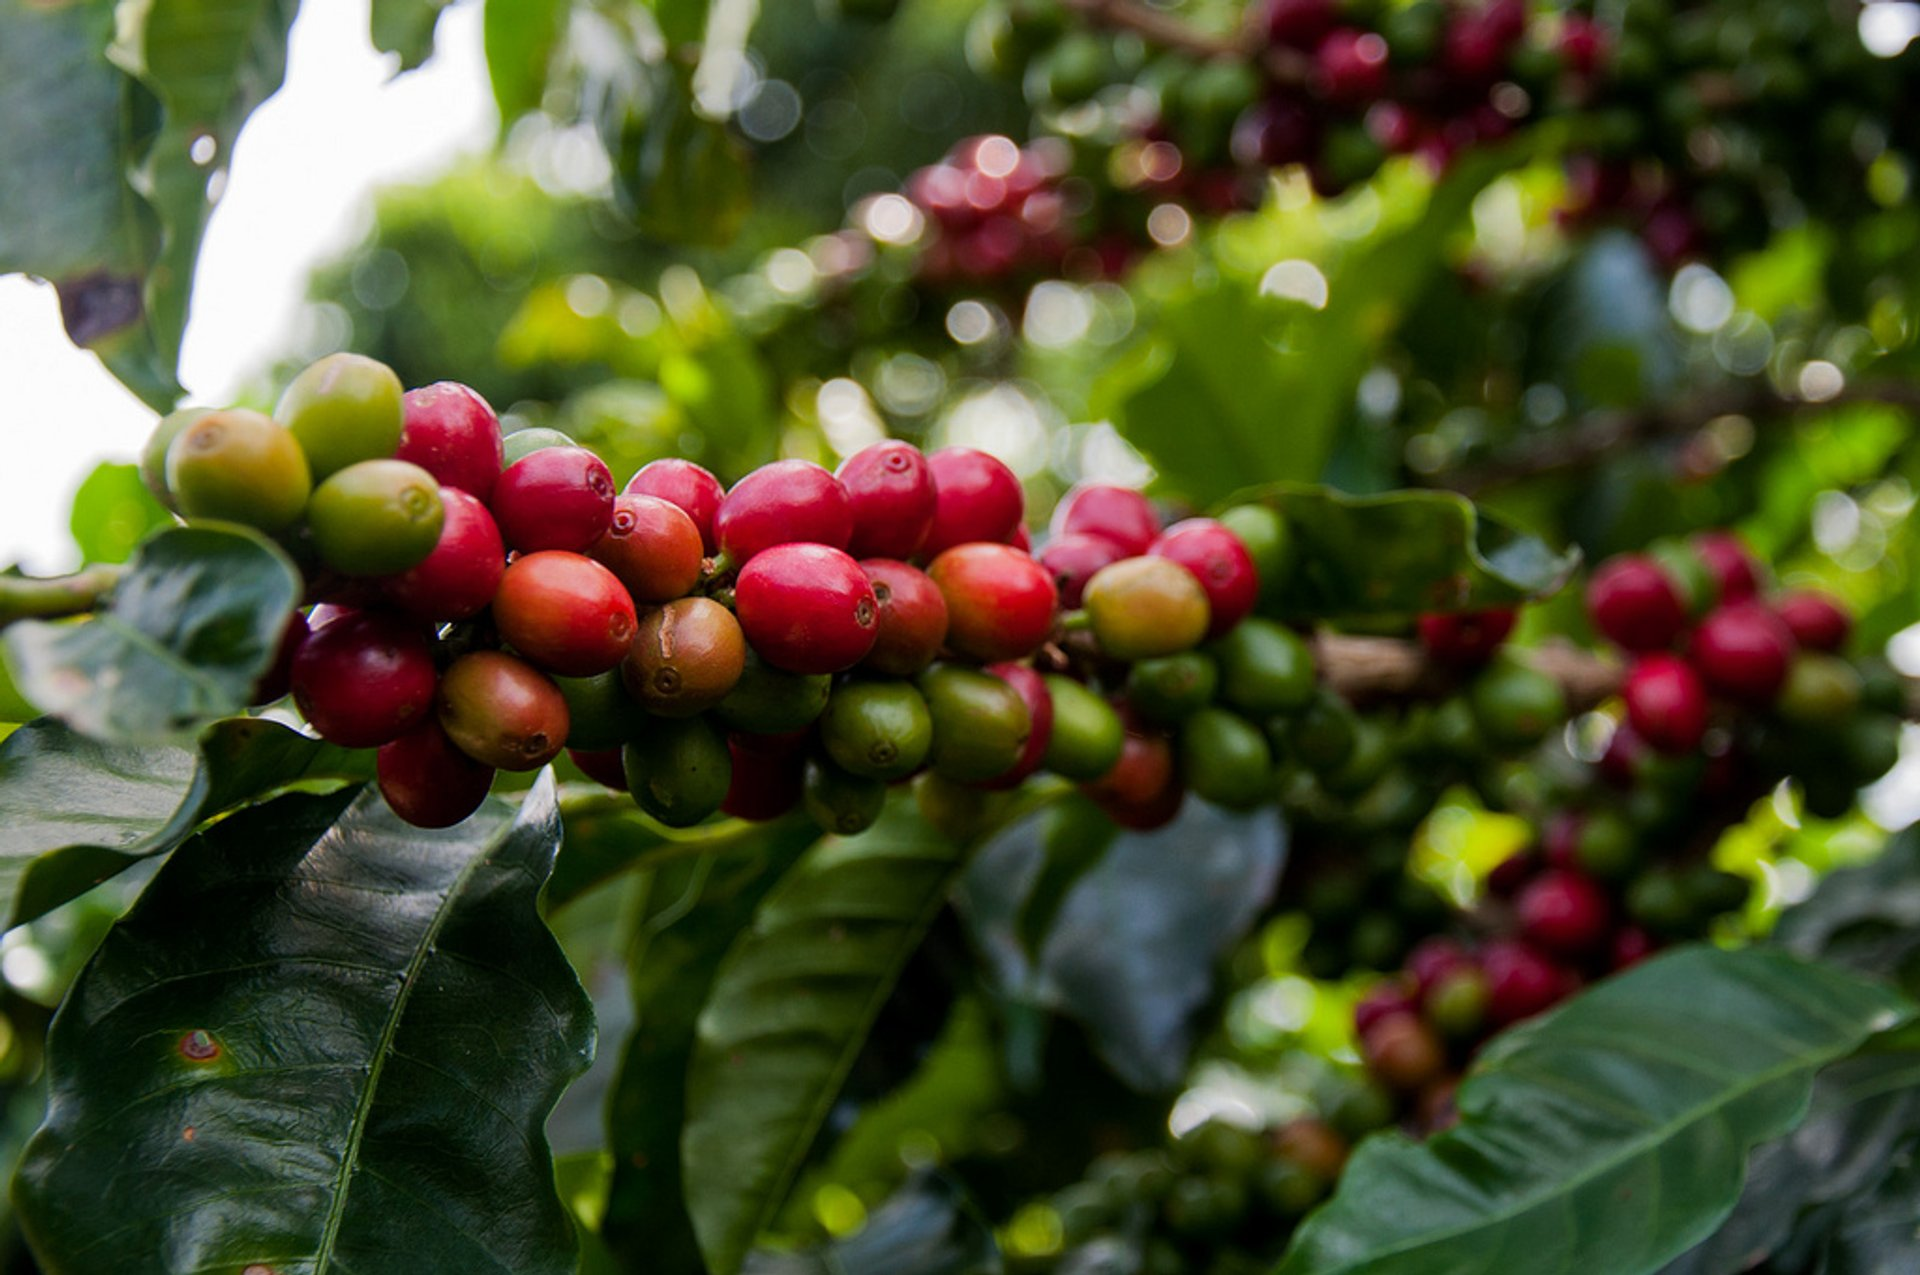 Coffee Harvest in Costa Rica 2019 - Best Time